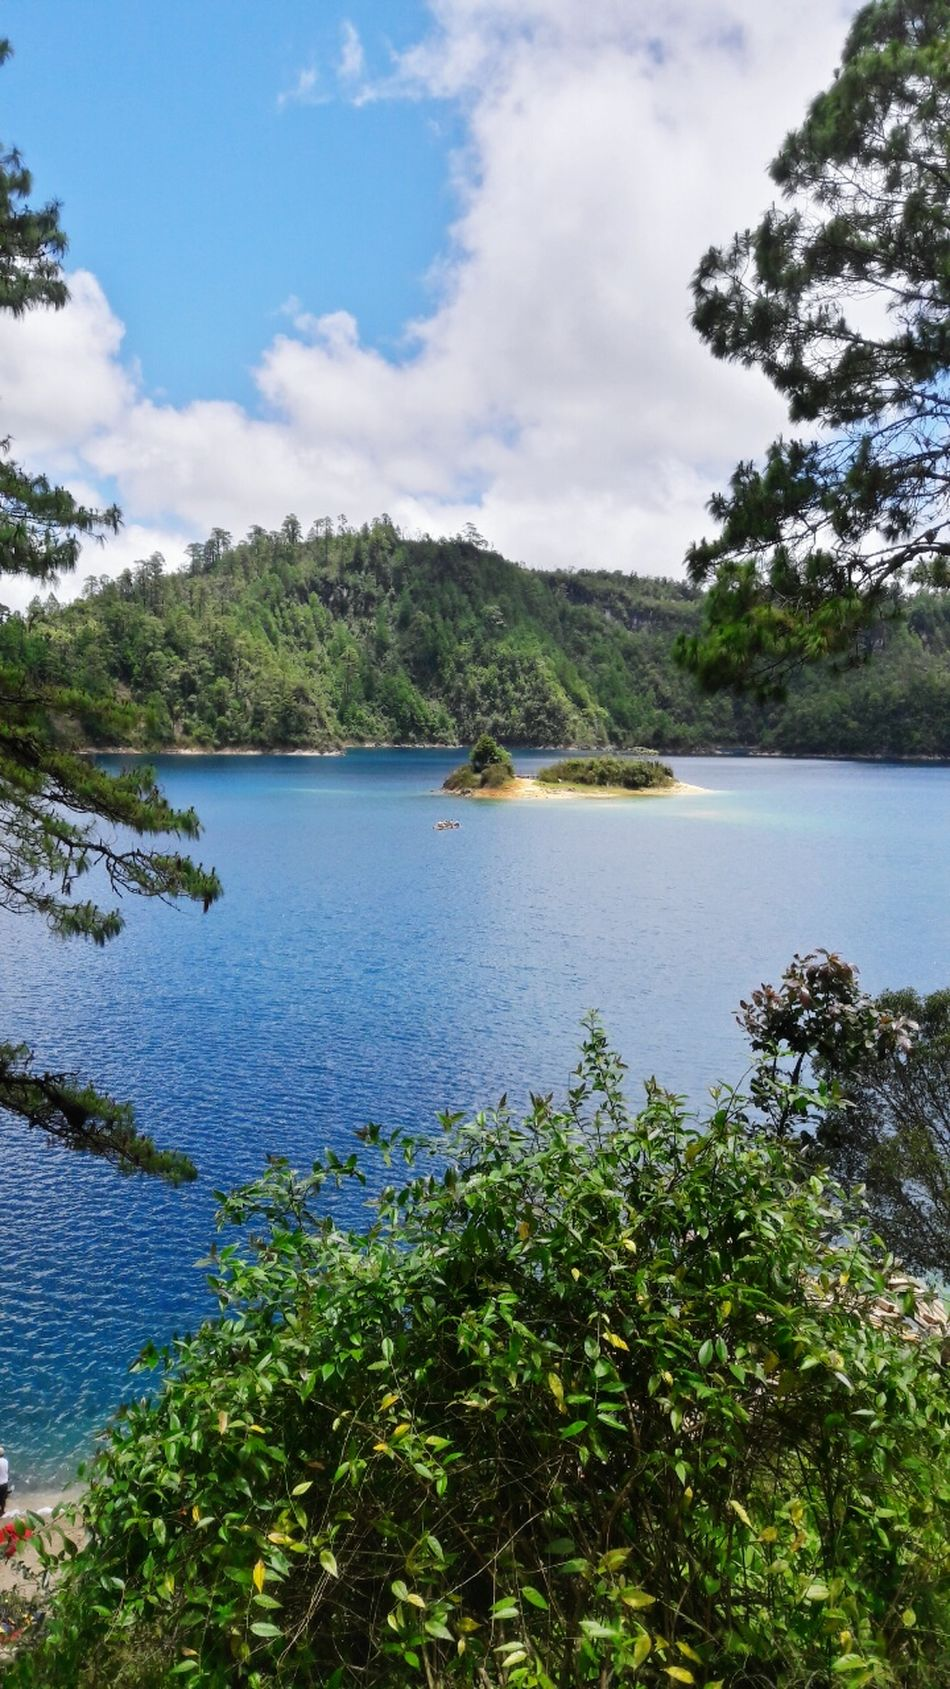 Blue Green Verde Green Color Sky Cielo Colorverde Chiapas, México Chiapasiónate Chiapas Chiapasvivemexico Nature Photography Hi! Agua Blue Water Blue Sky Amazing Day Amazing Place Lago MyPhotography Blue Water Rocas Water Nature BeautifulNature_collection